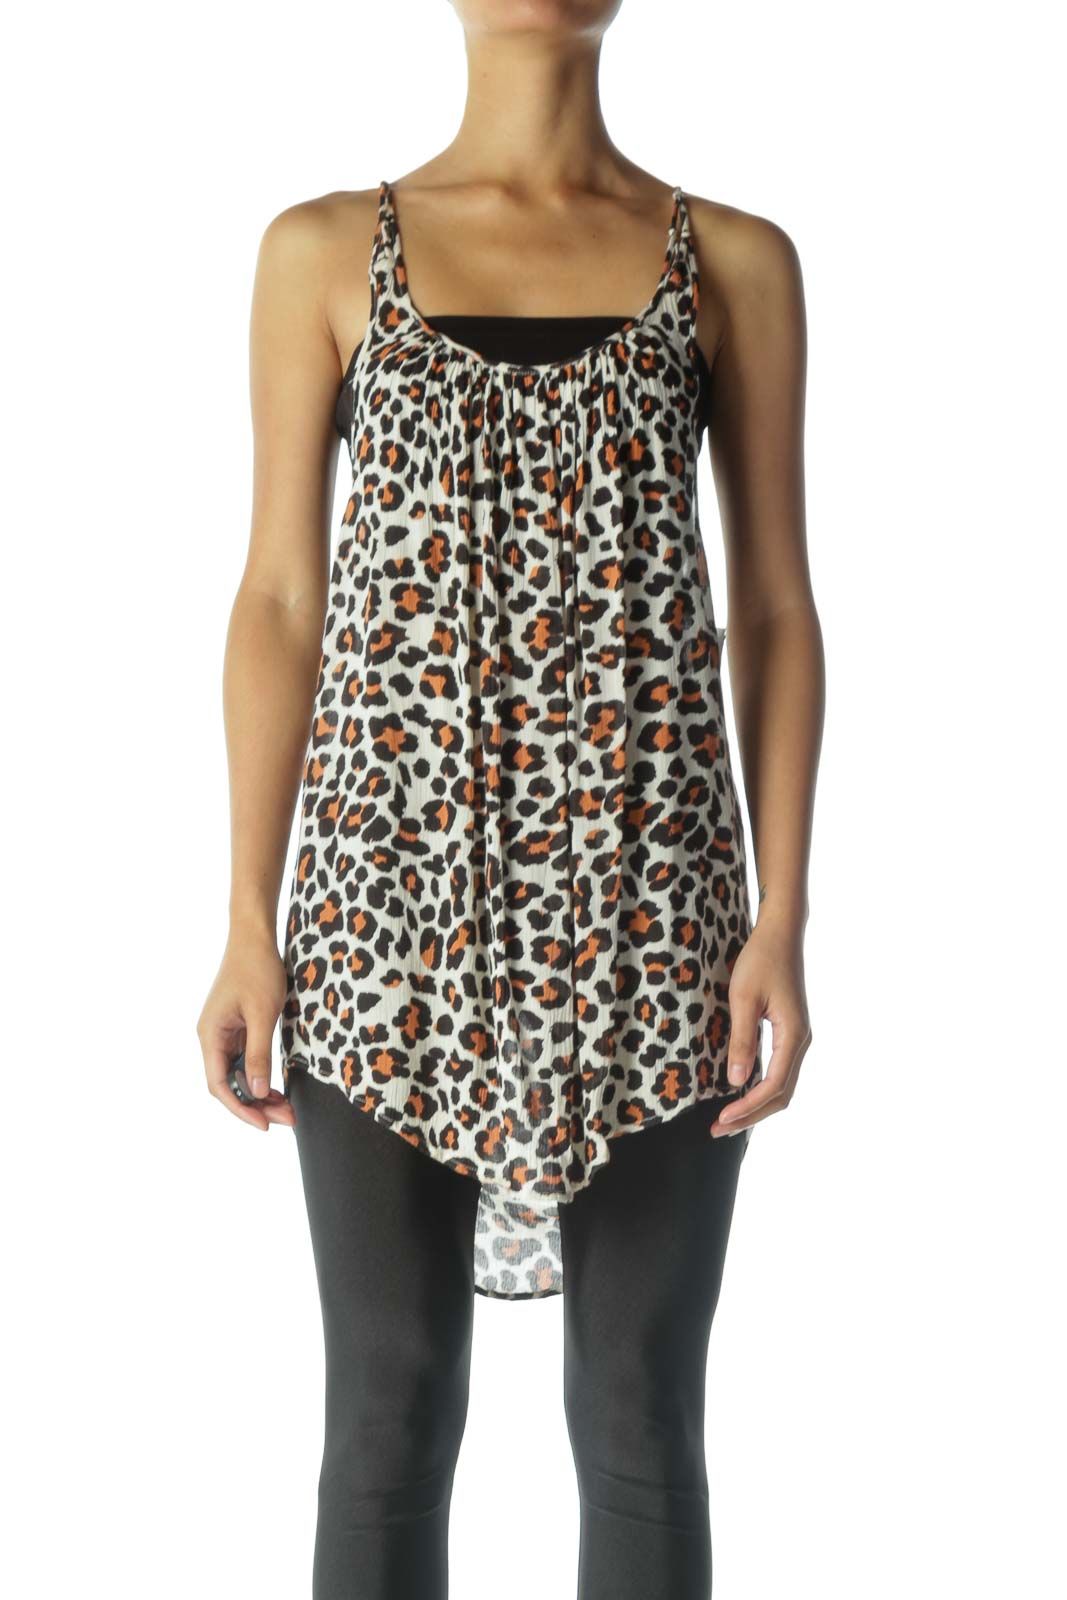 Brown Cheetah Print Tank Top Front